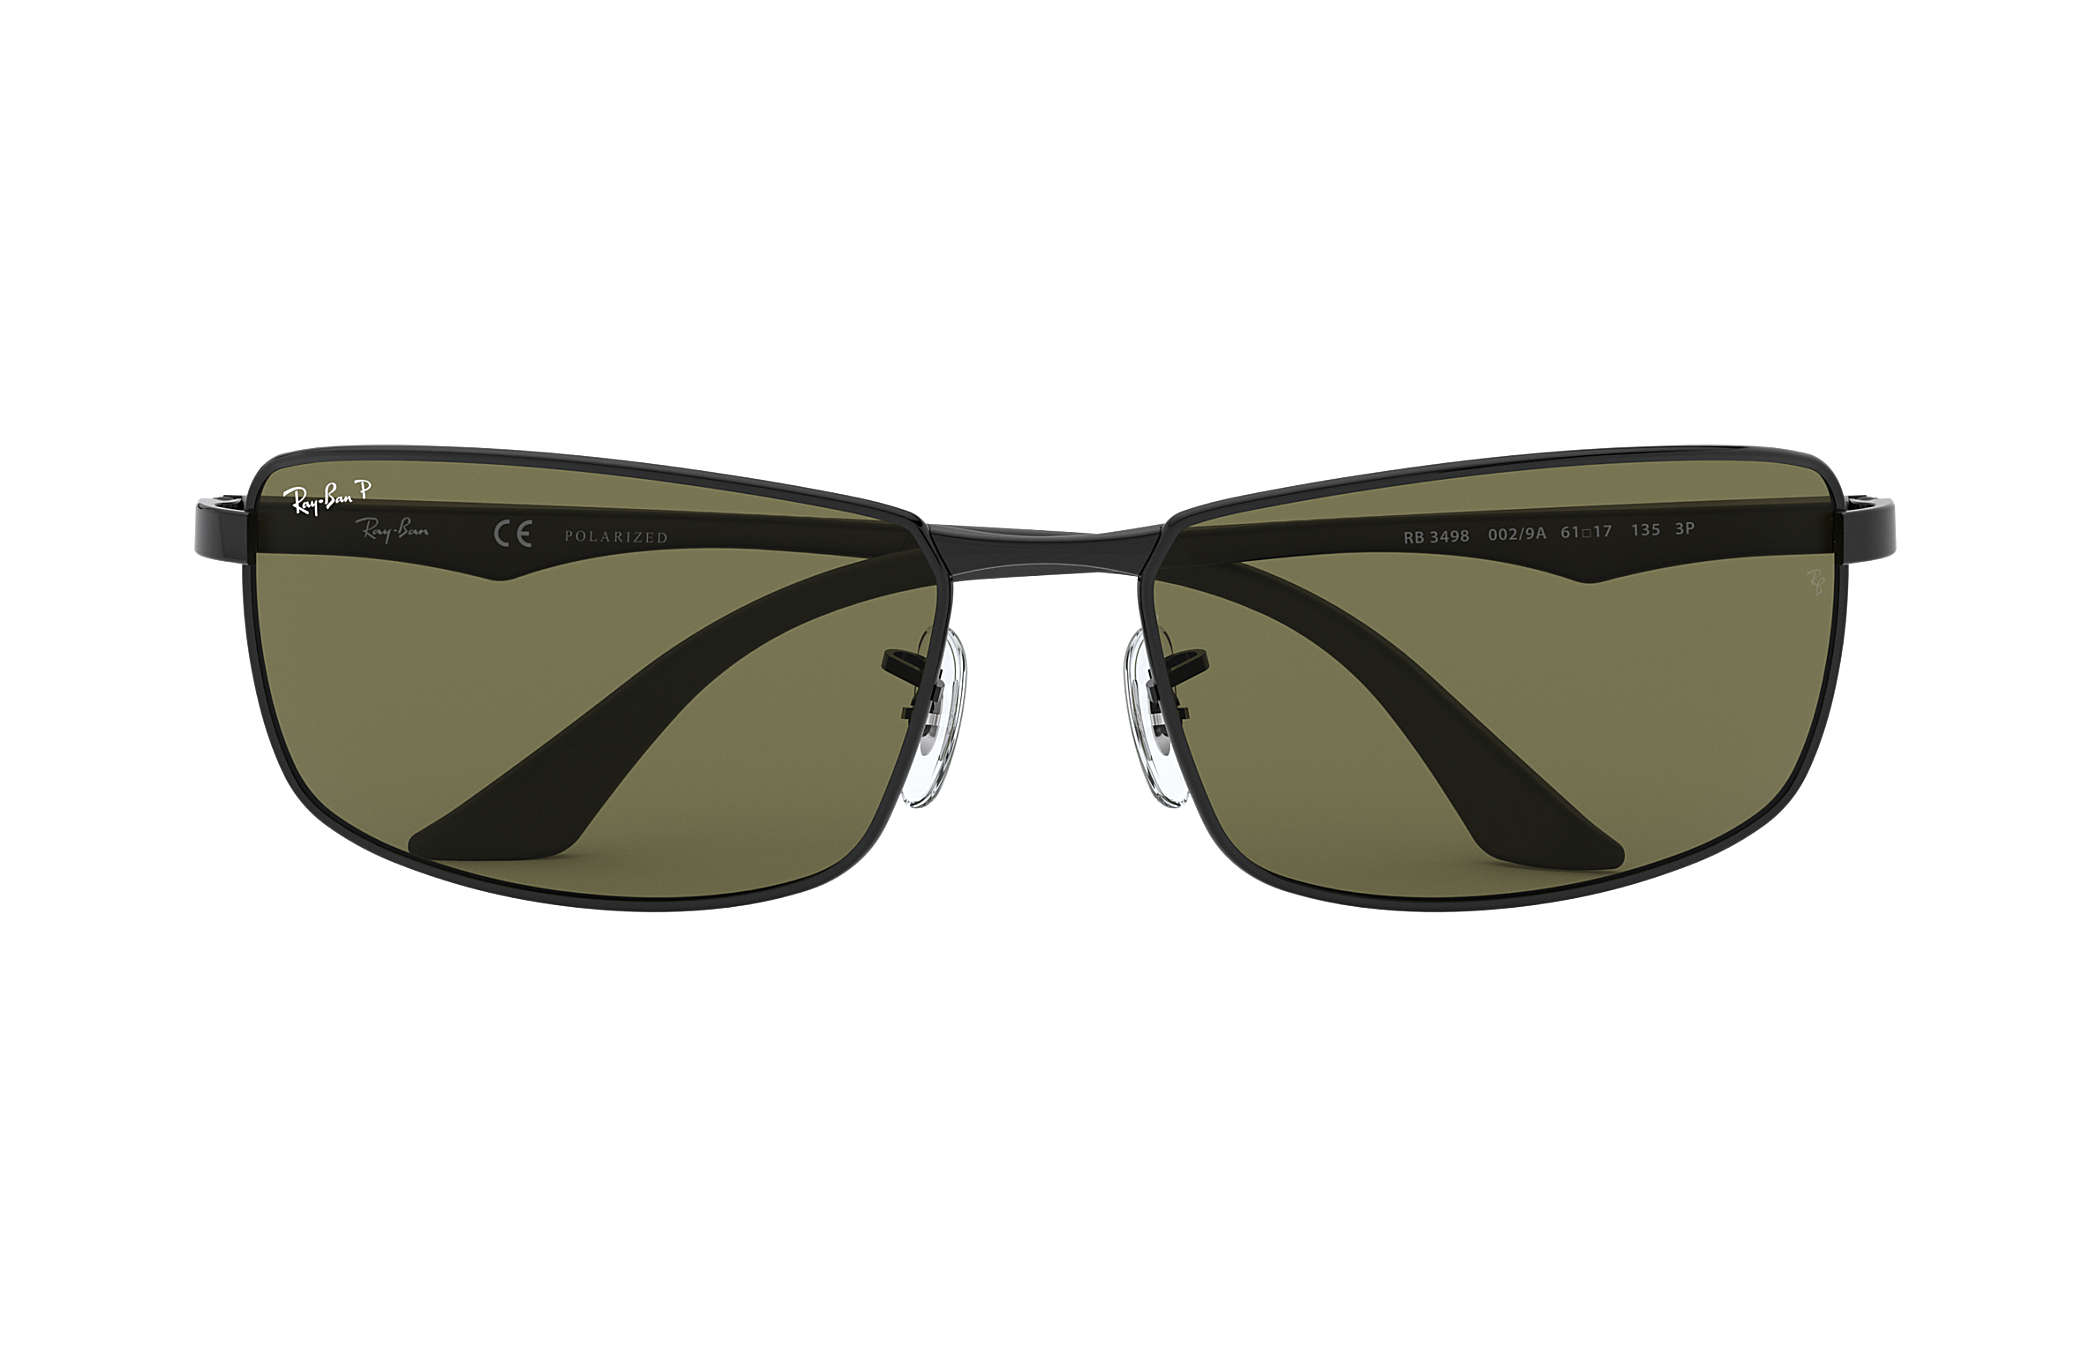 eccc96b77e0 Ray-Ban RB3498 Black - Metal - Green Polarized Lenses - 0RB3498002 ...